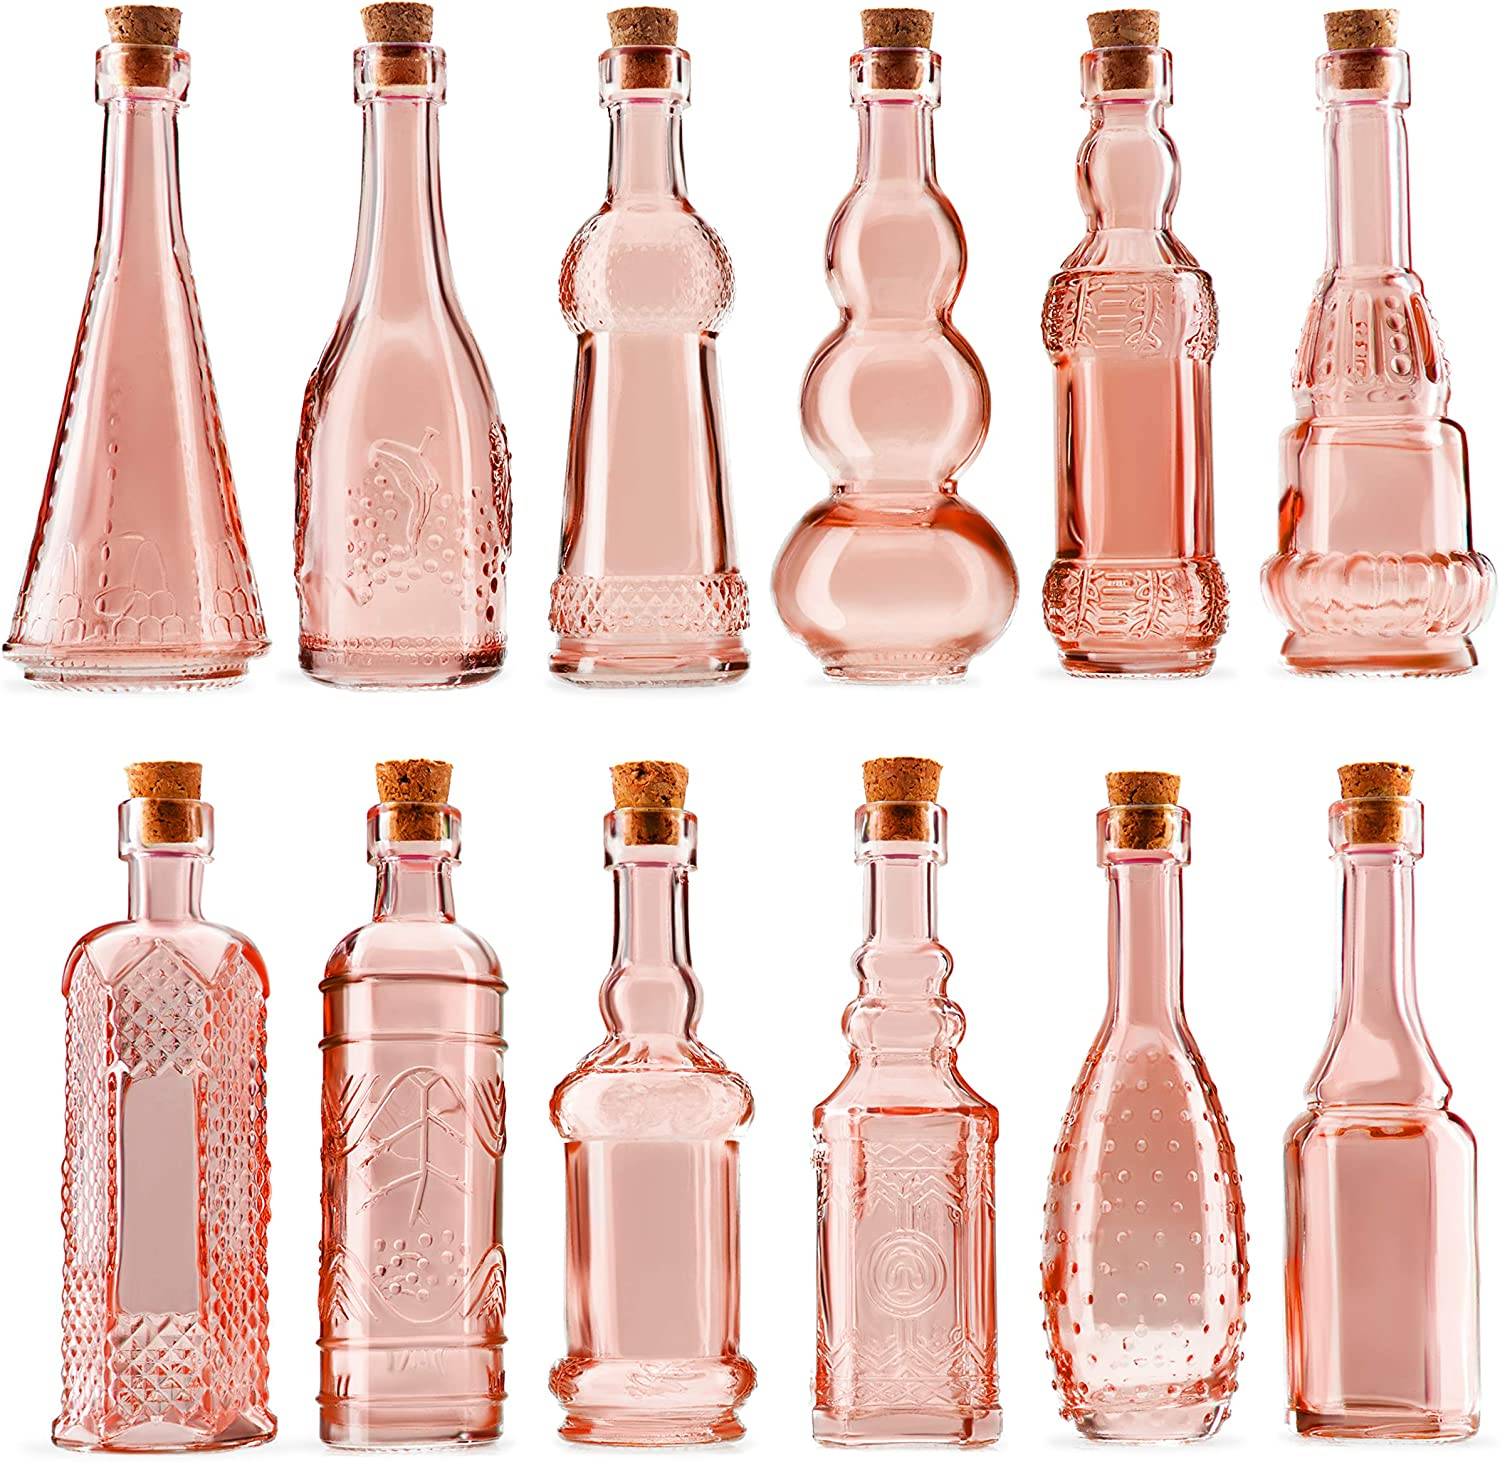 BULK PARADISE Mini Reddish Pink Vintage Potion Bottles with Corks Assorted Shape - Bud Vases and Decorations, Set of 12 pcs, 4.6 Inch Tall (11.43cm), 1.4 Inch Wide (3.56cm)